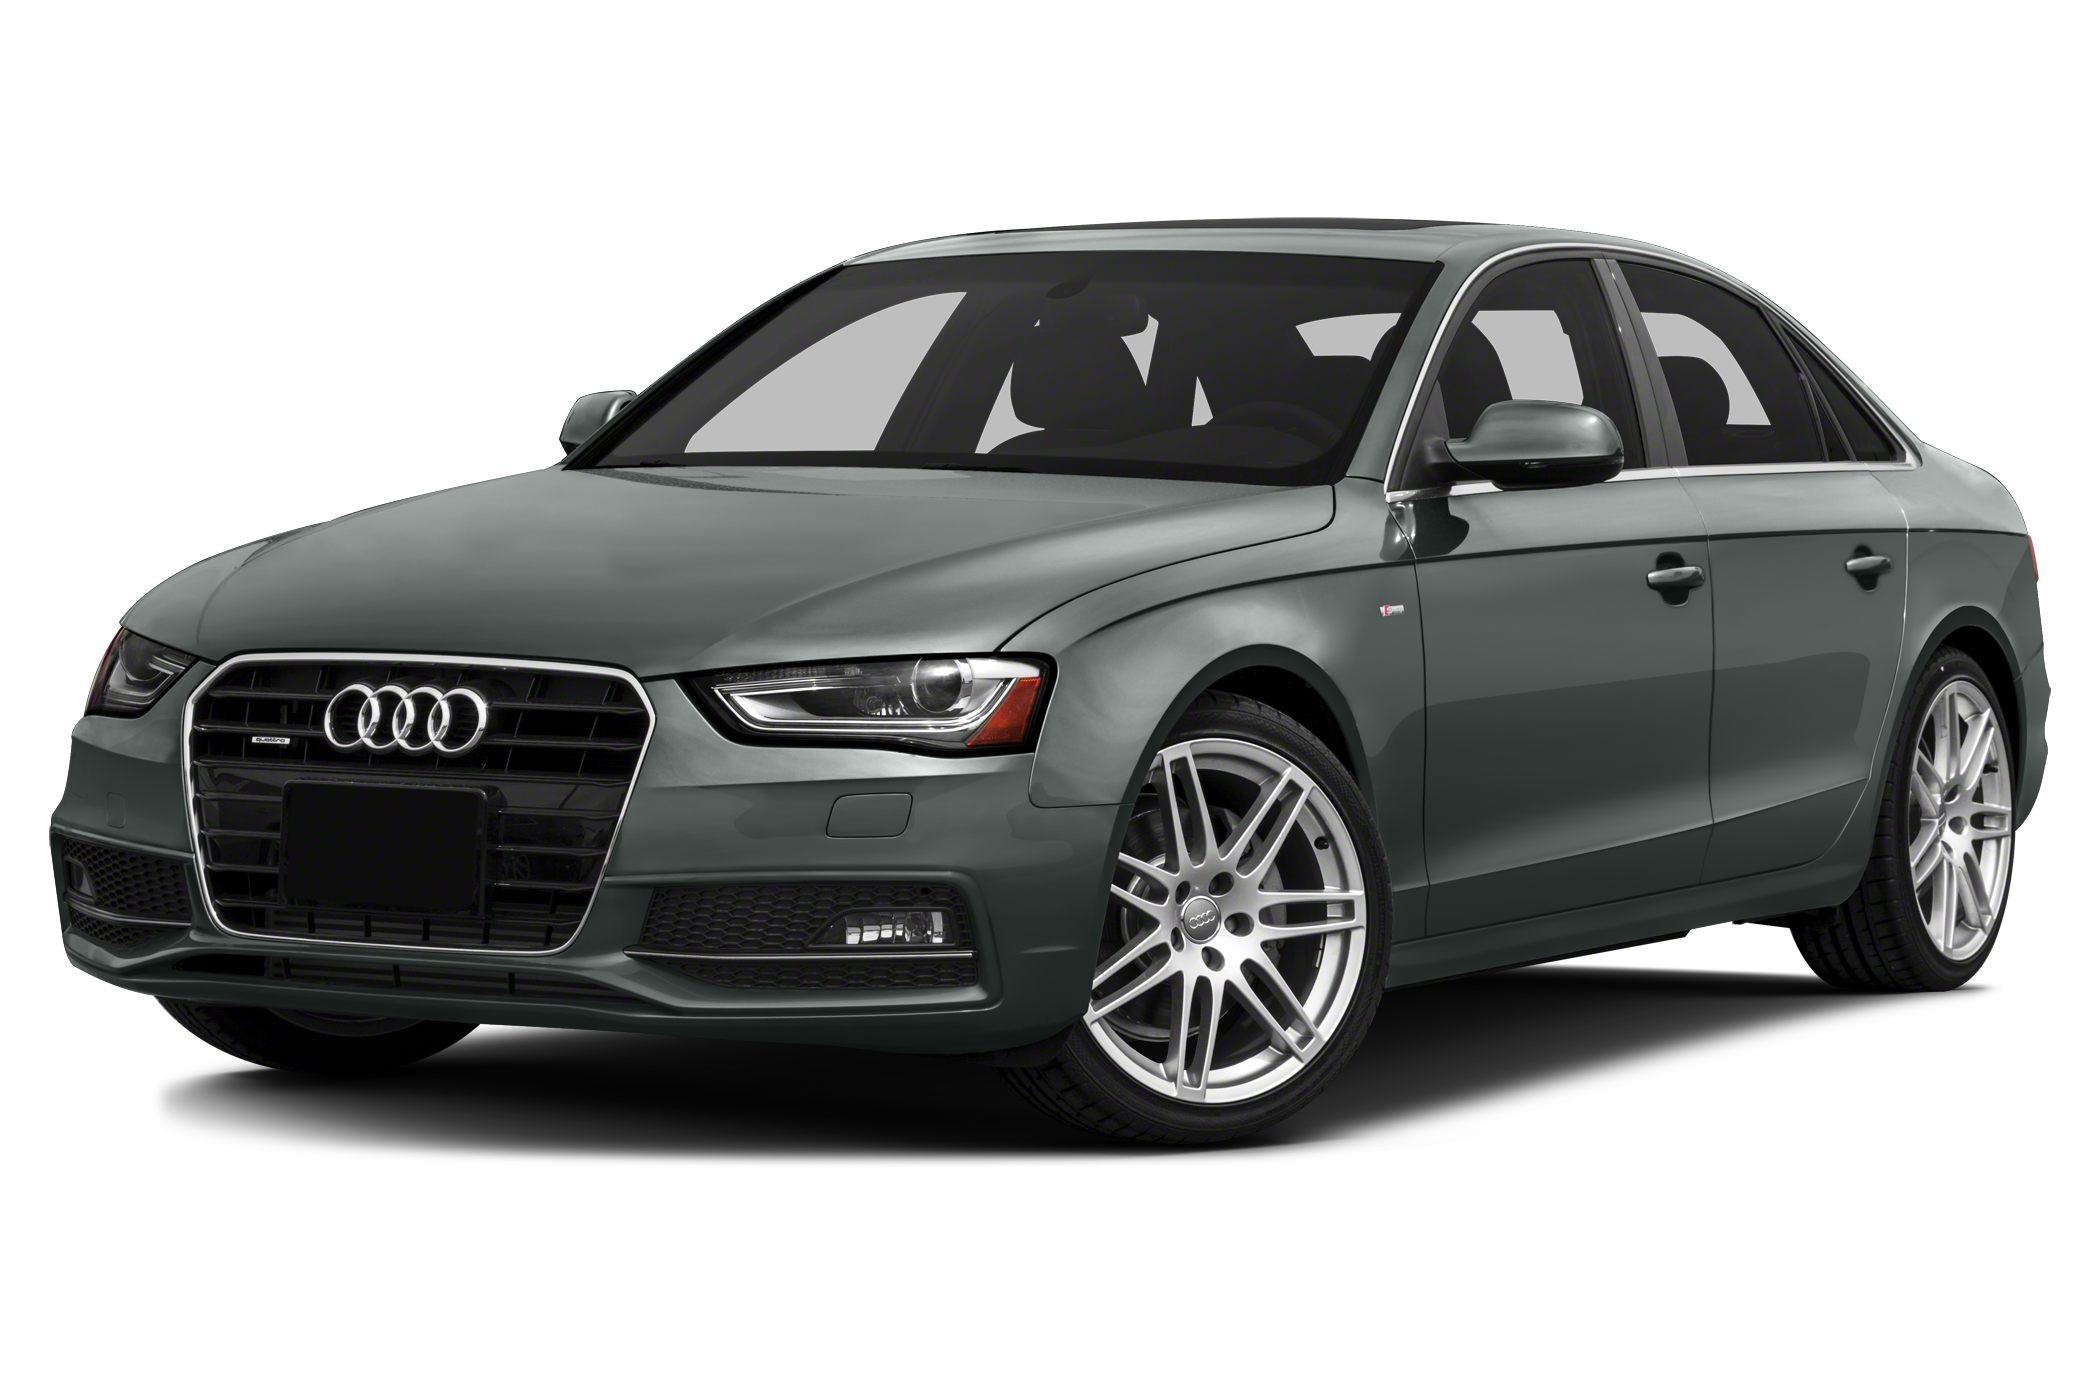 Audi A4 2012 Modified New 2013 Audi A4 Safety Features-2150 Of Unique Audi A4 2012 Modified